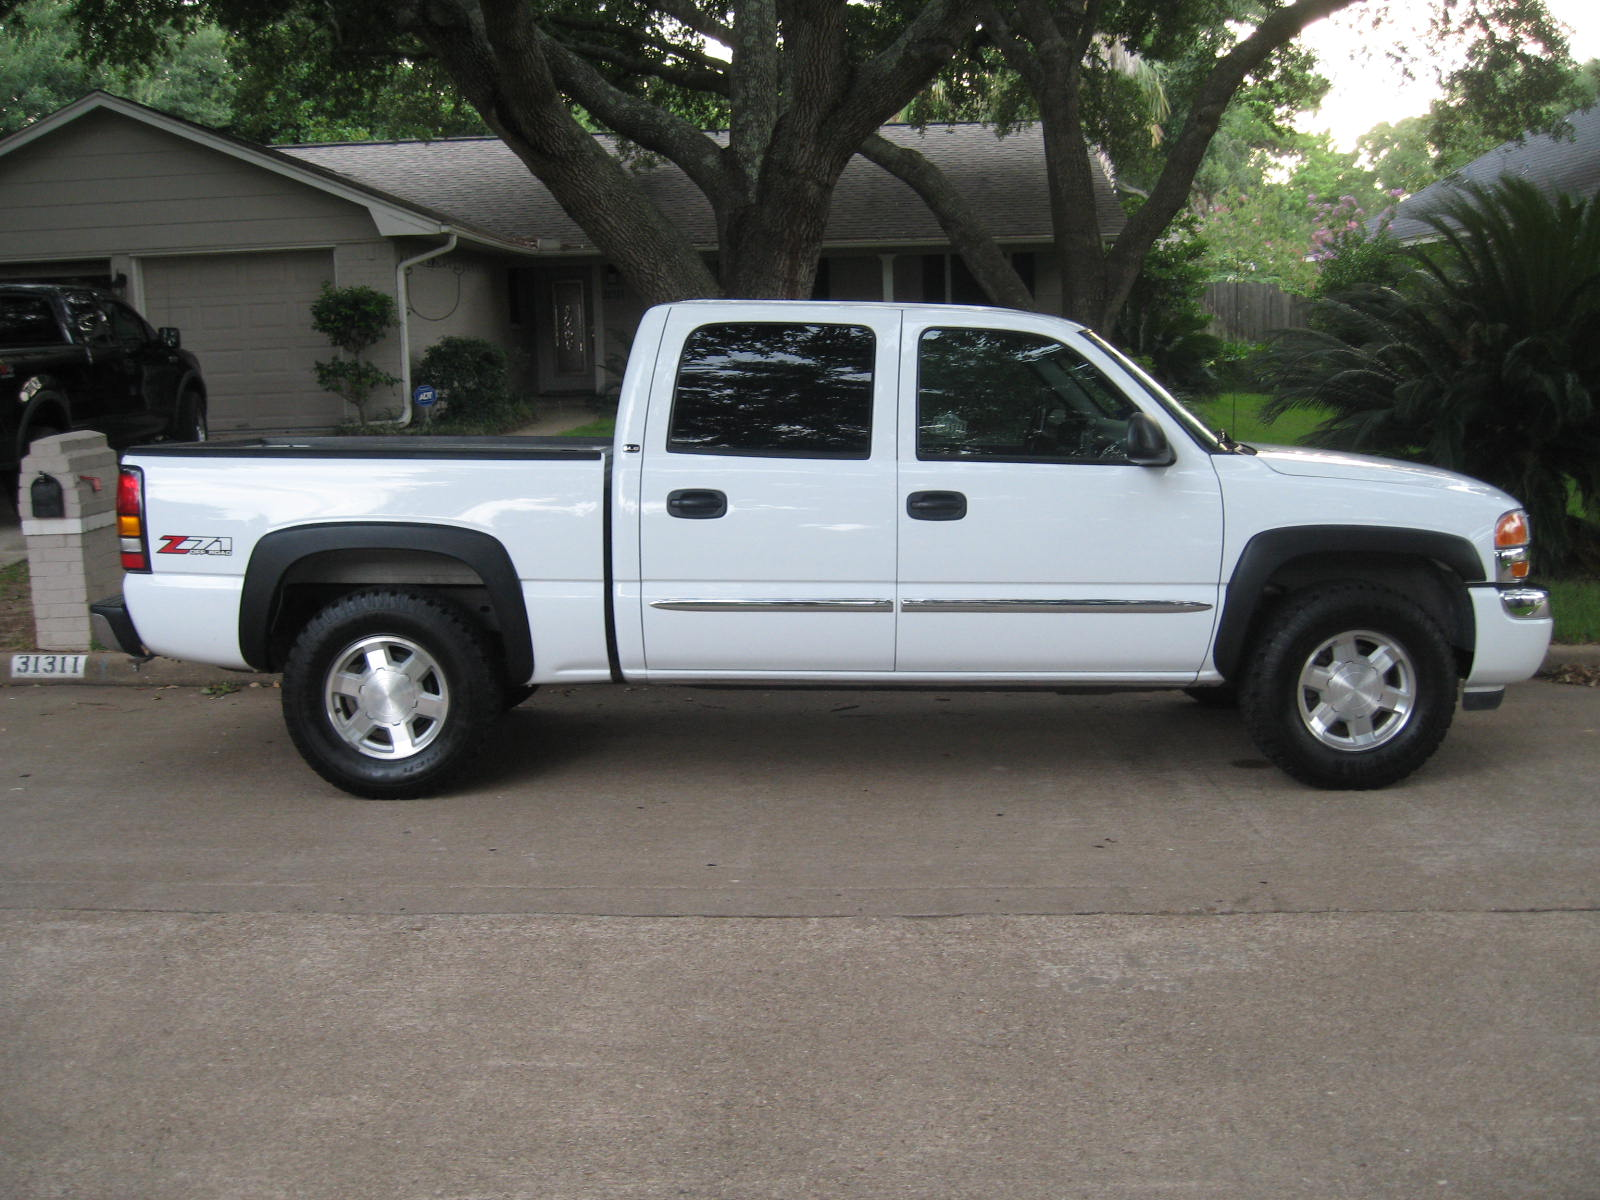 2015 Gmc Sierra All Terrain Custom Grilles moreover 2014 Chevy Silverado Archives together with 2013 Sierra Pickup Emergency Brake Release additionally 2017 Chevrolet Silverado 2500hd Tire Size besides Ktvn Channel 2 News Android Apps On Google Play. on 2014 gmc sierra all terrain recalls